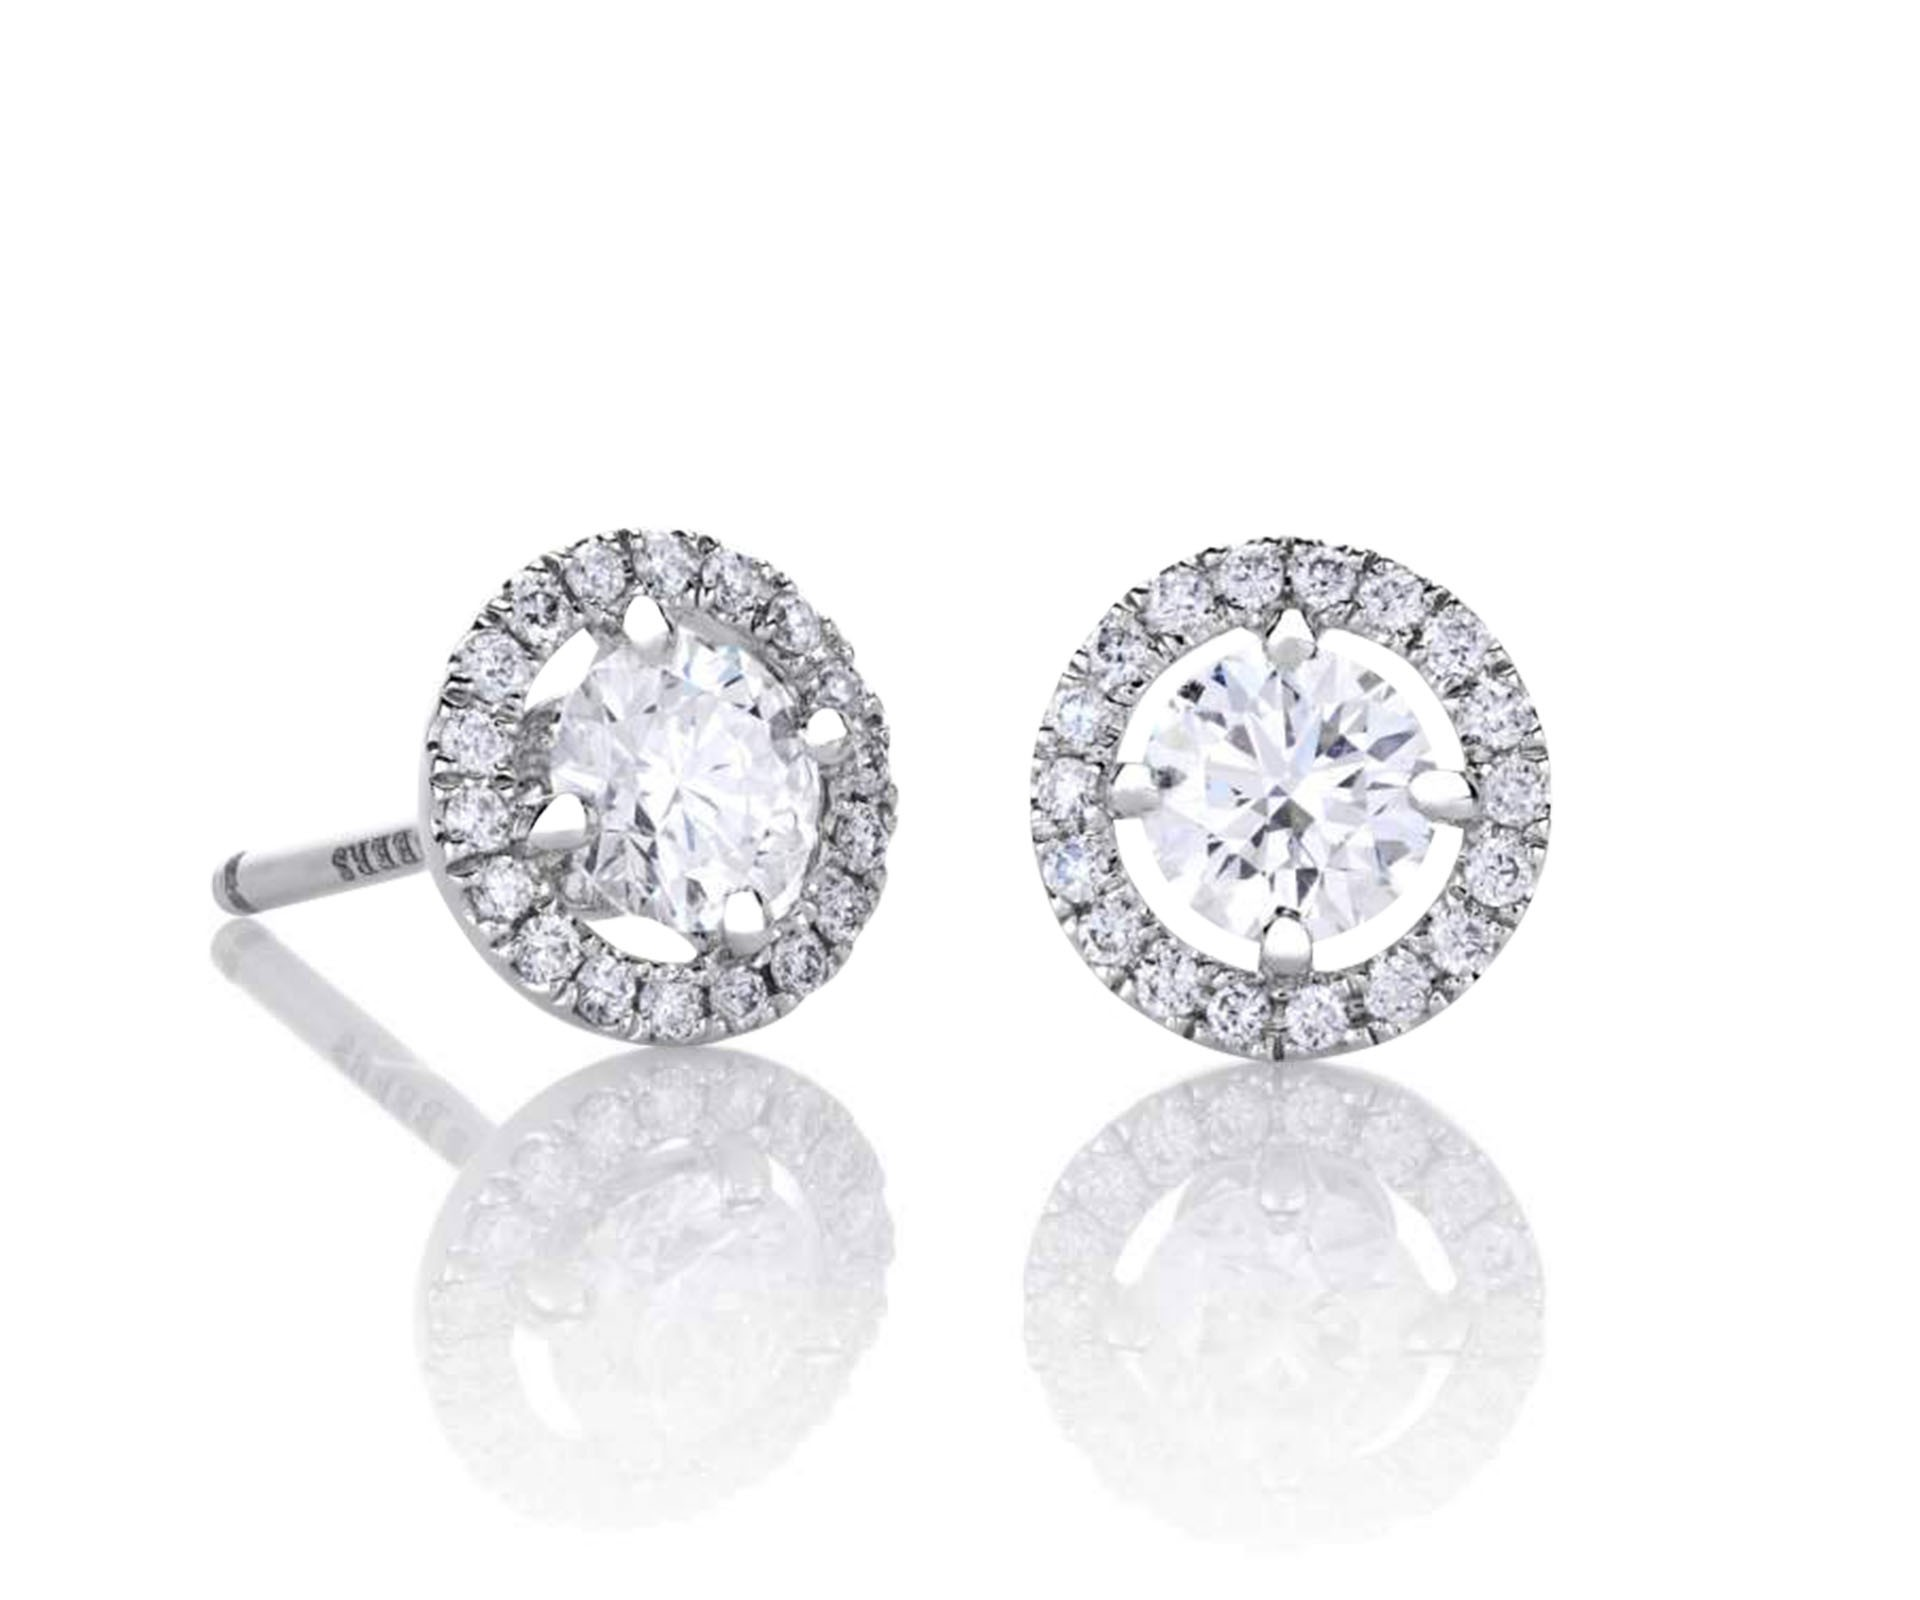 Go with Diamond earrings as earring of choice